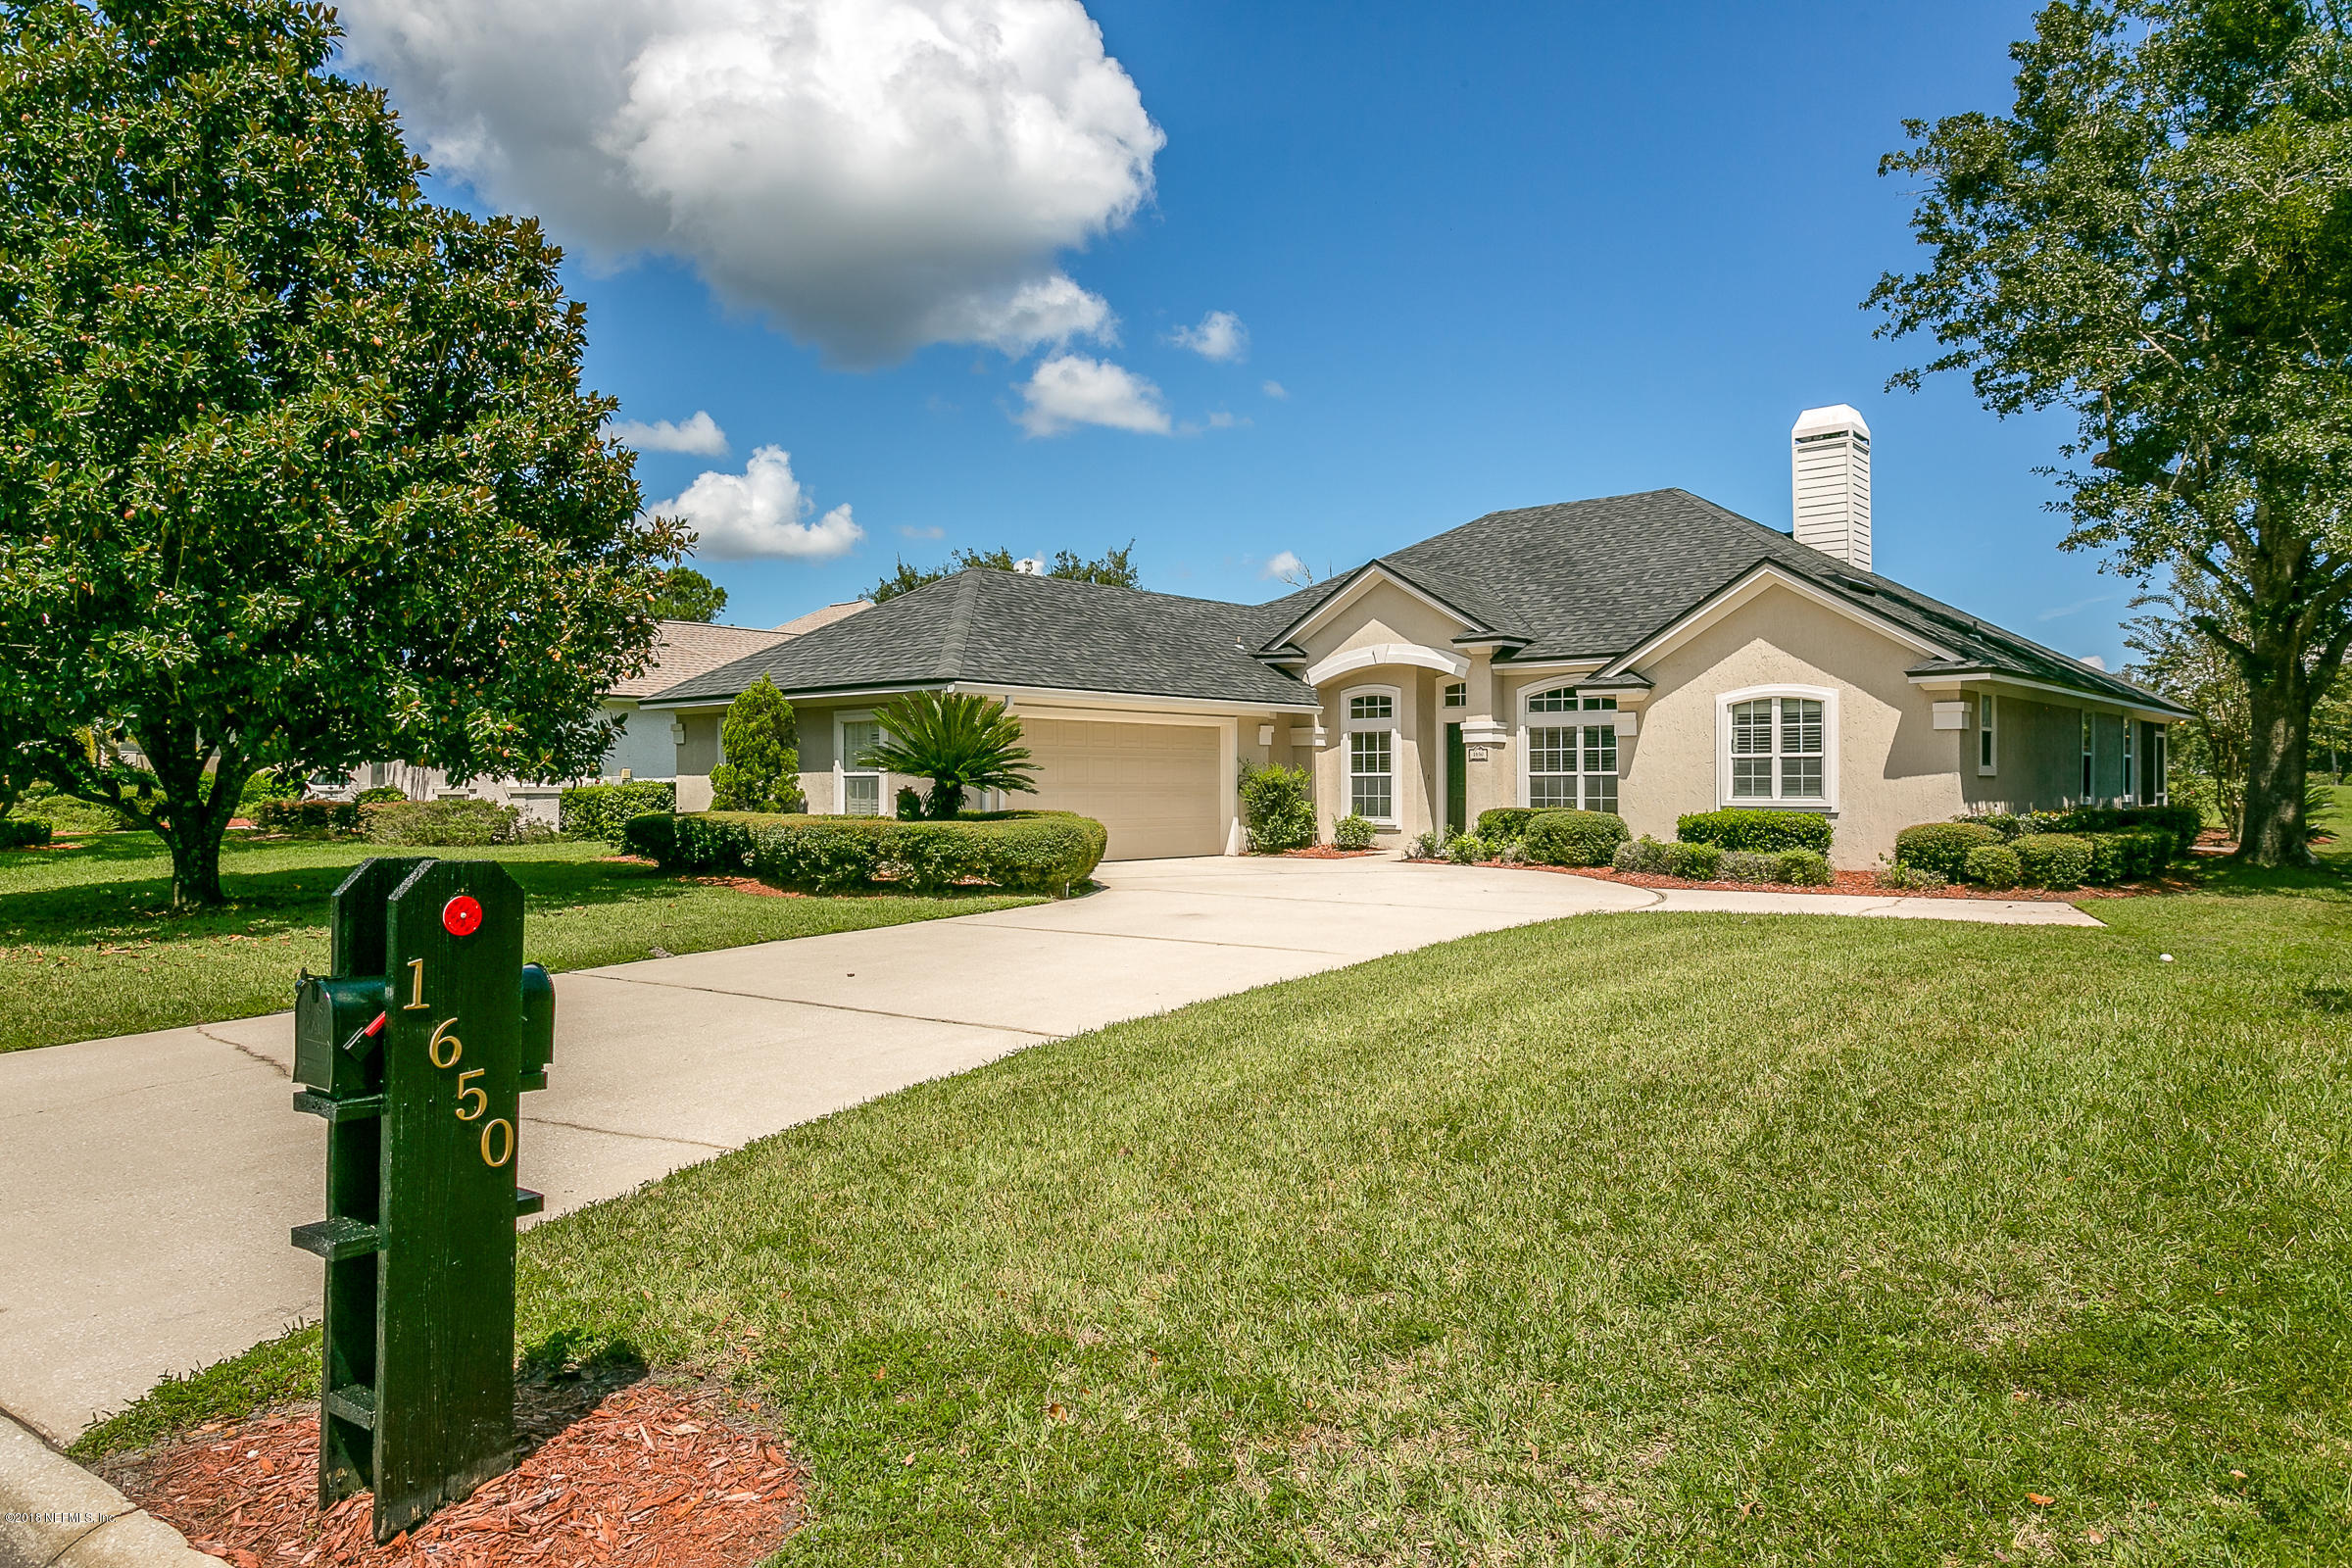 1650 PEBBLE BEACH, GREEN COVE SPRINGS, FLORIDA 32043, 4 Bedrooms Bedrooms, ,2 BathroomsBathrooms,Residential - single family,For sale,PEBBLE BEACH,955183